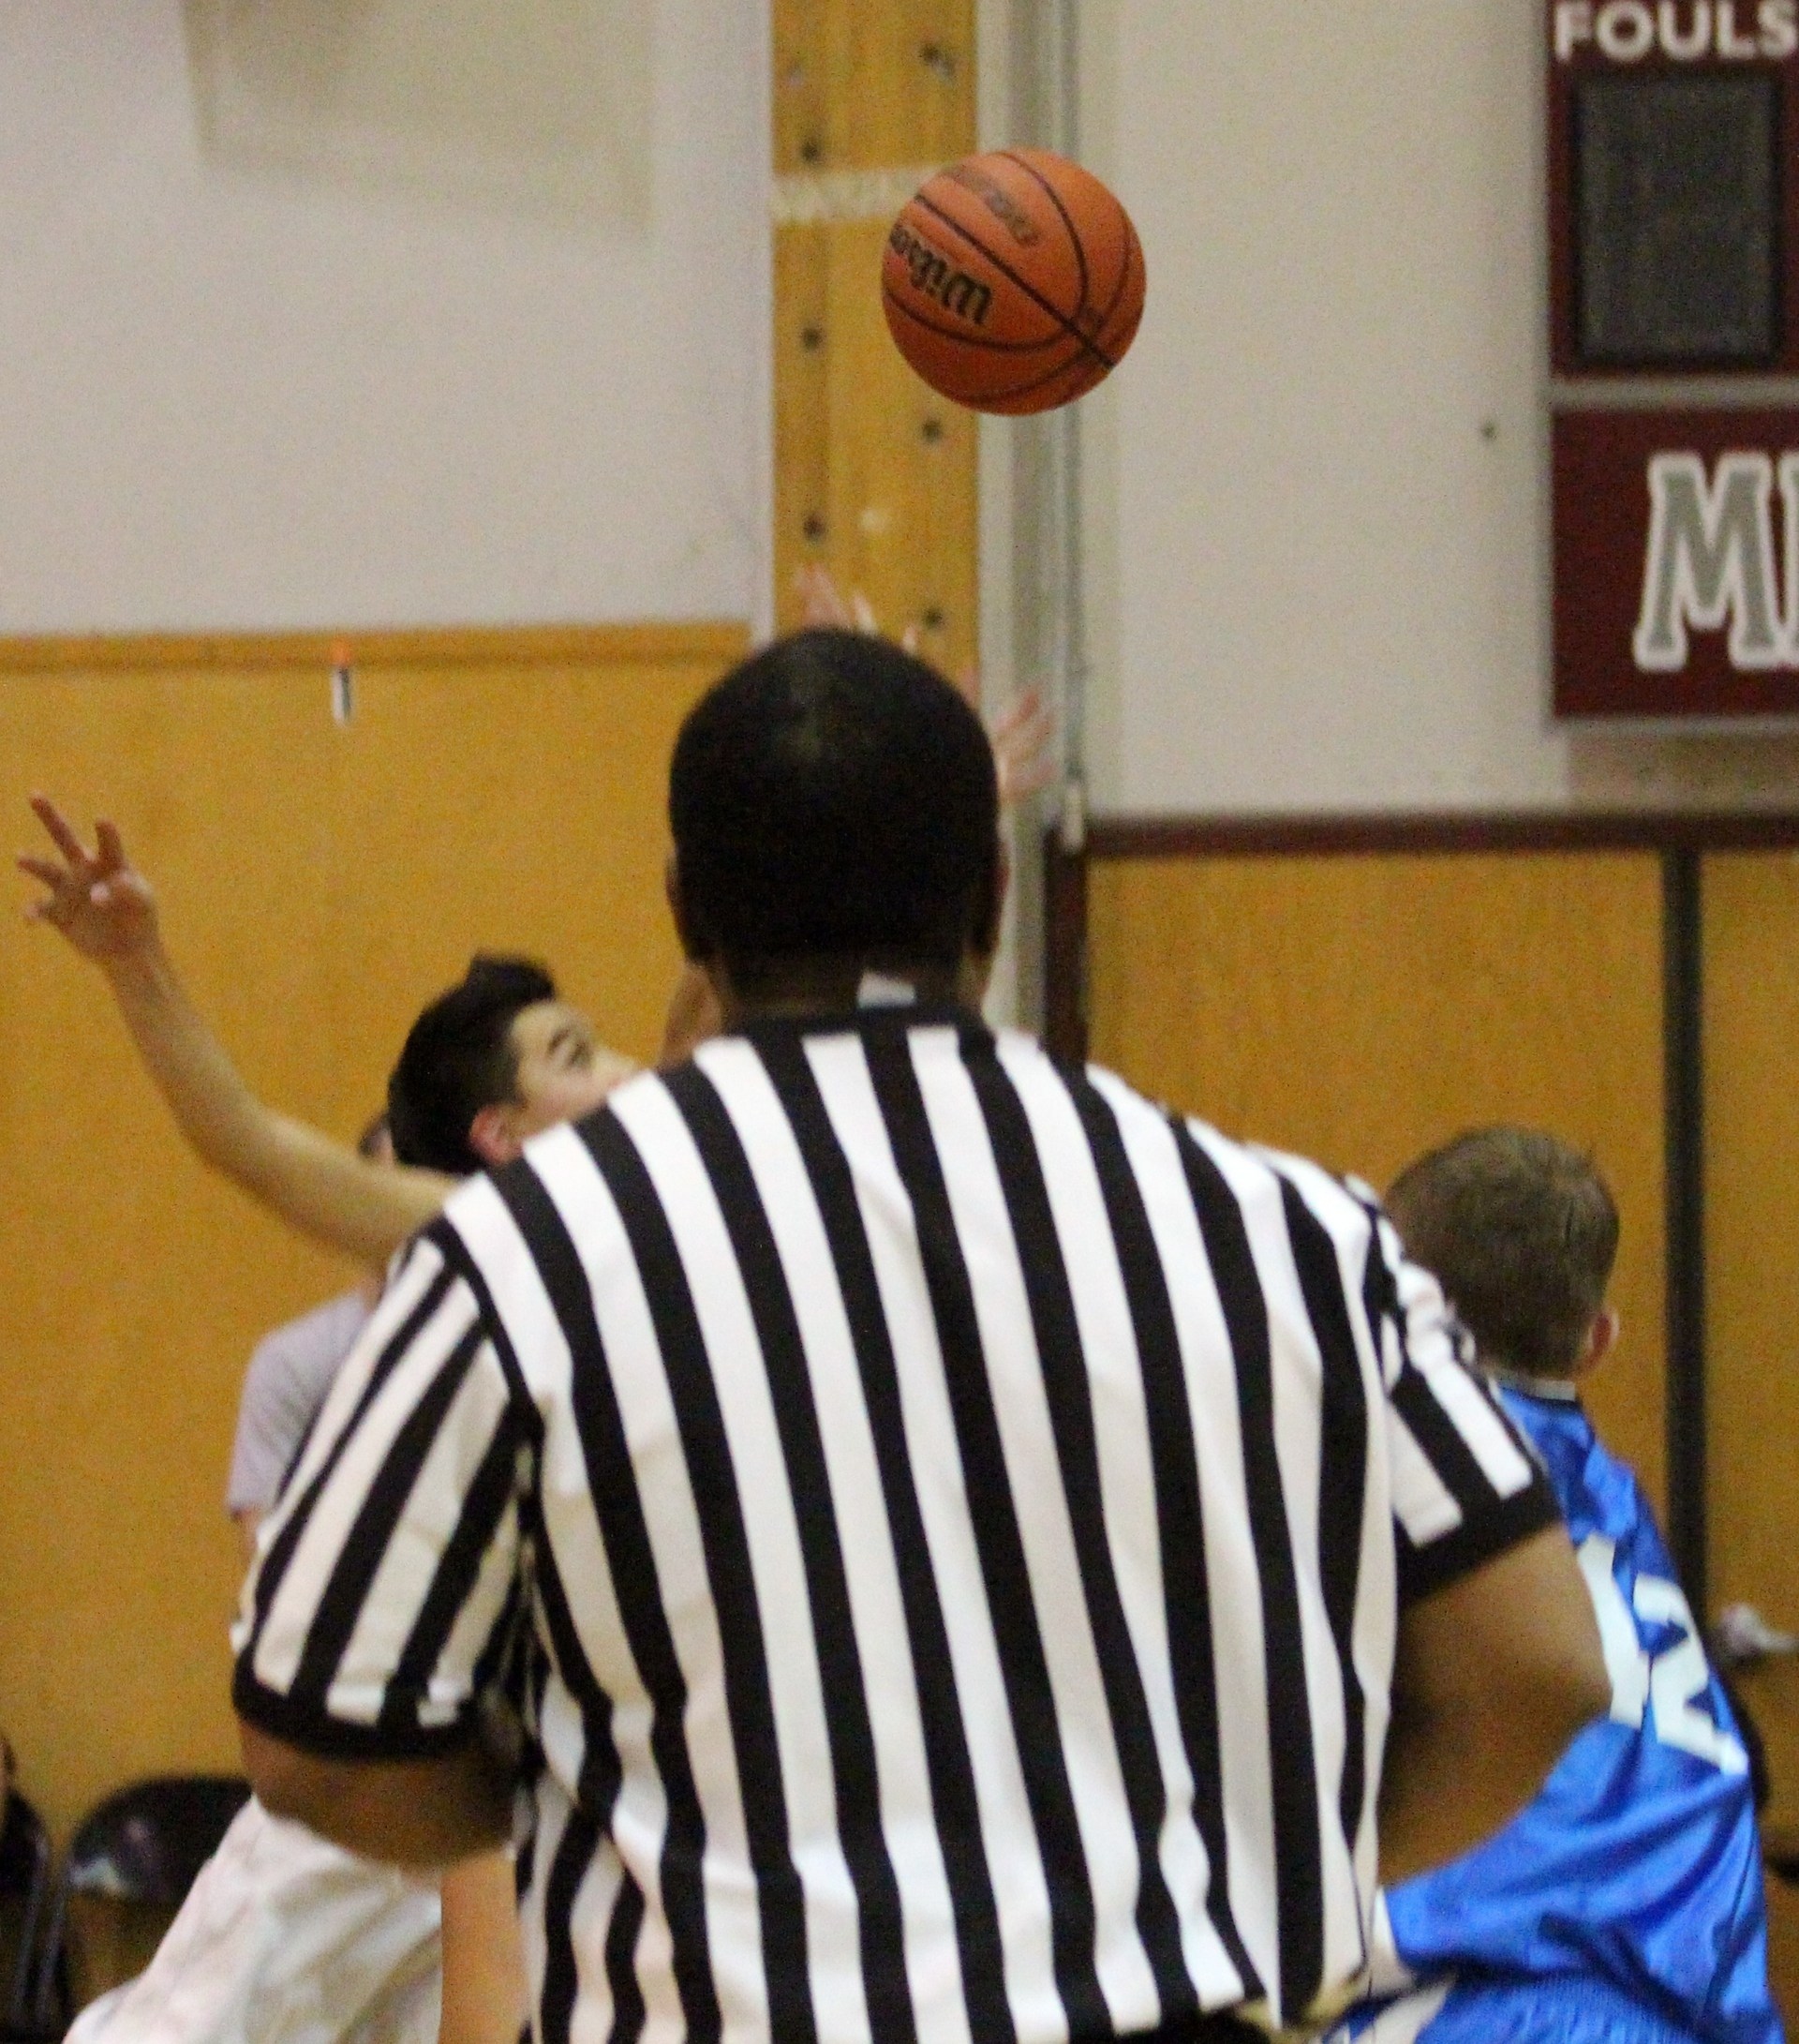 Picture of a basketball surrounded by players and referee.